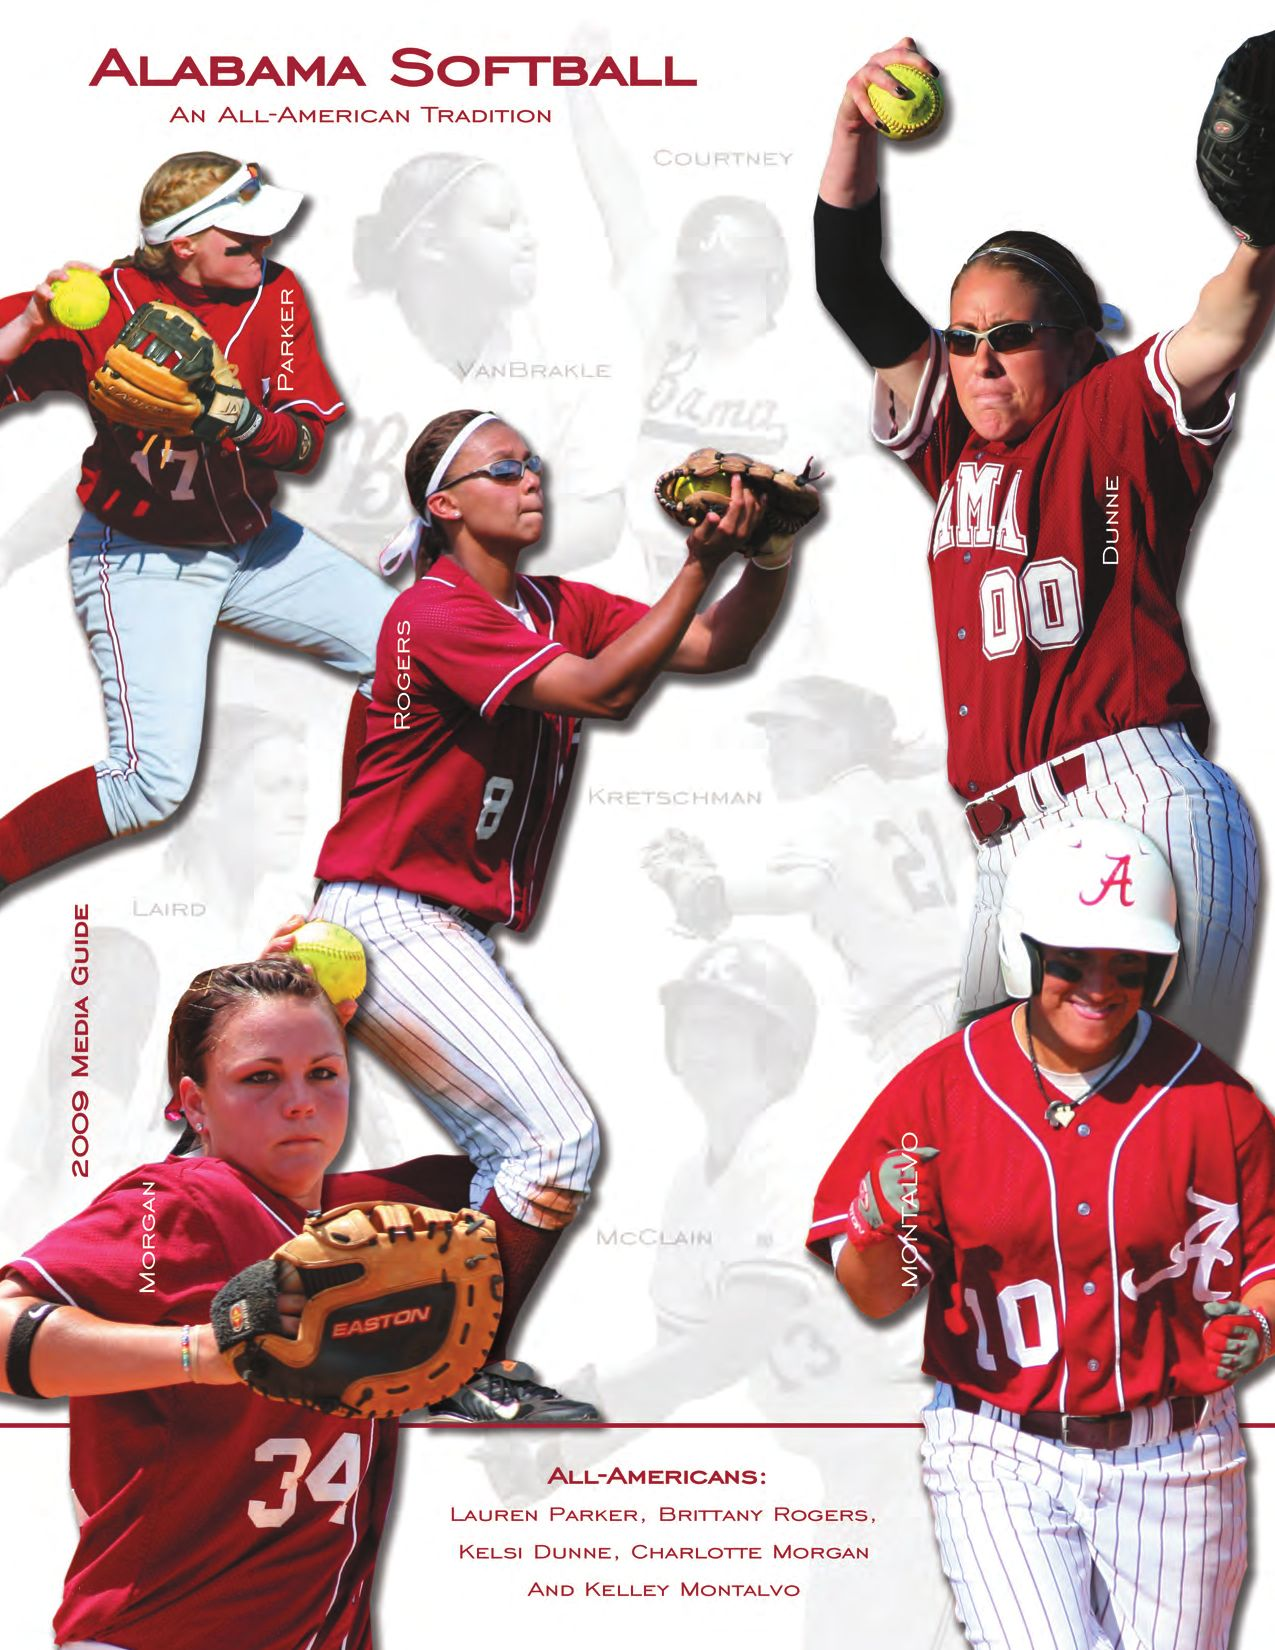 2017 Softball Media Guide By Chattanooga Athletics